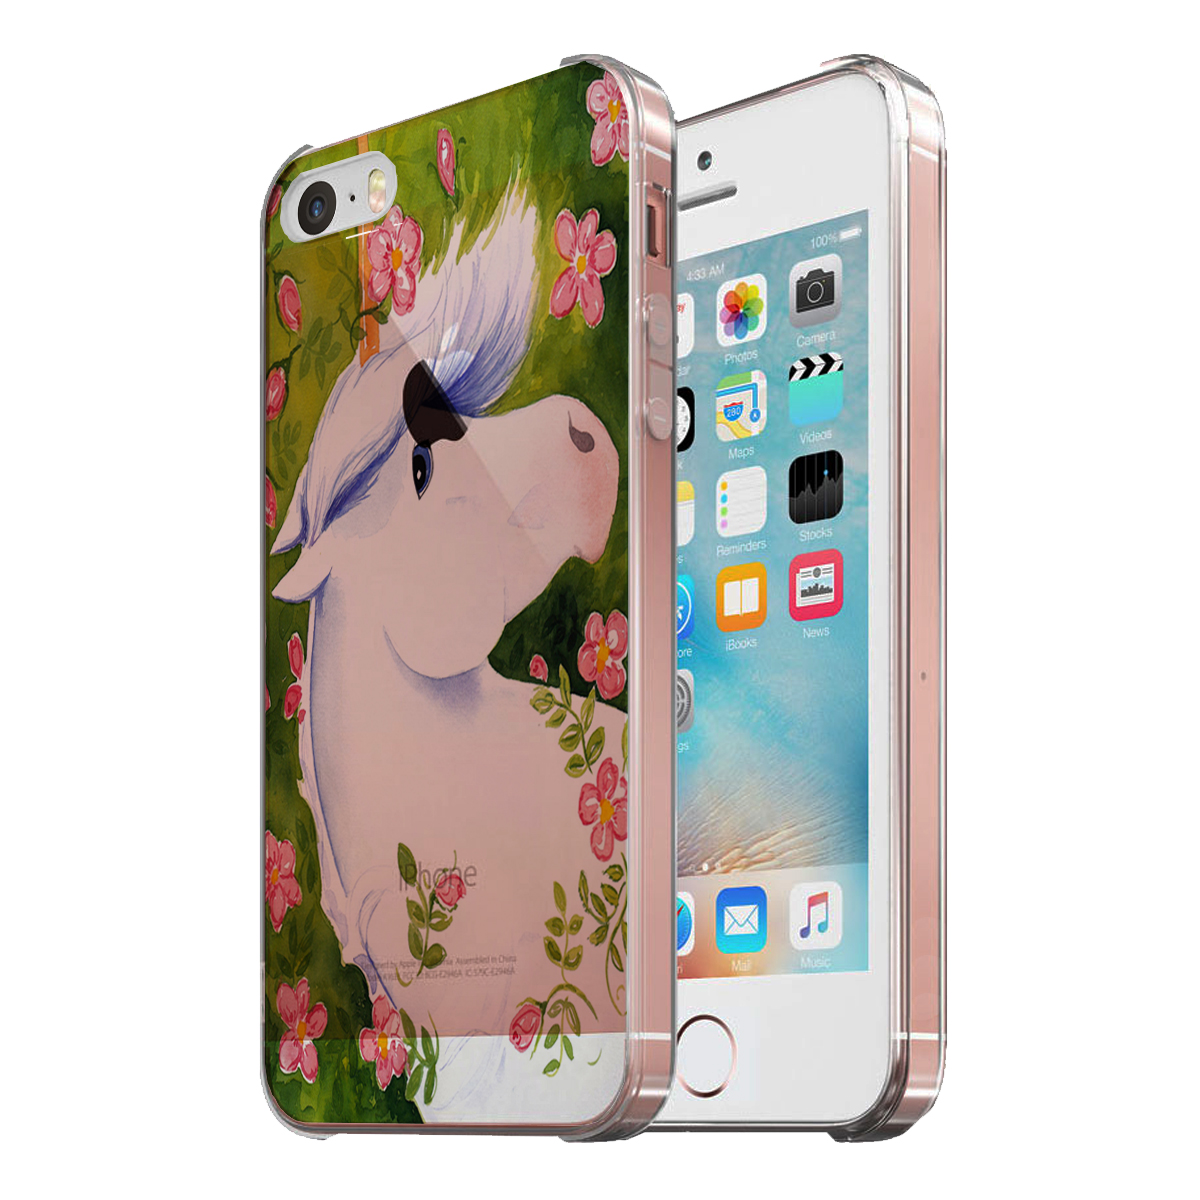 KuzmarK Clear Cover Case fits iPhone SE & iPhone 5 - Blue-Eyed Unicorn with Pink Roses Art by Denise Every